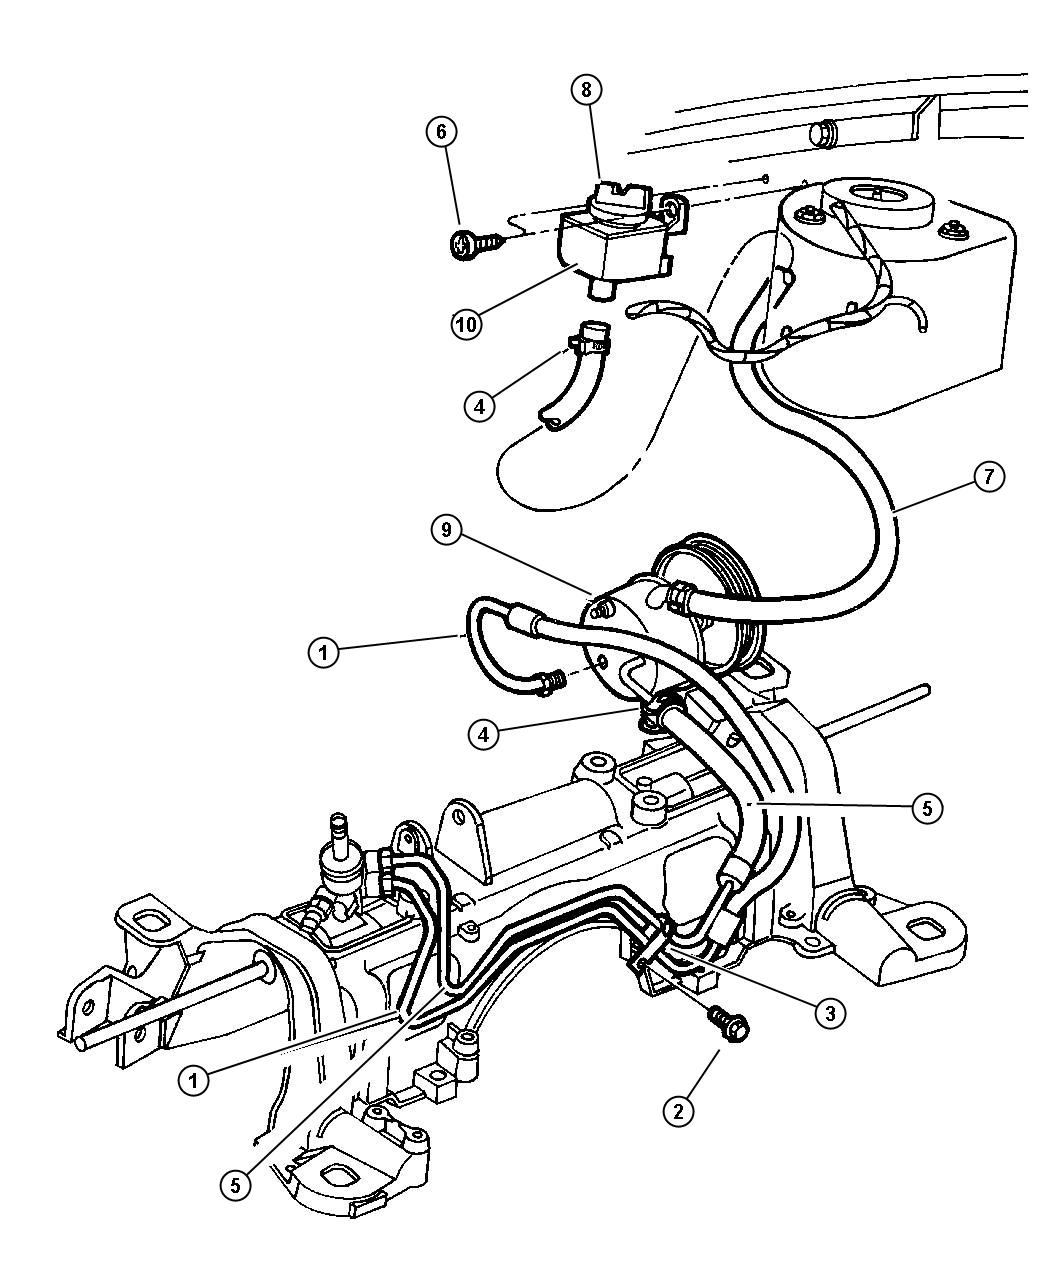 Service Manual How To Change A Powersteering Hose